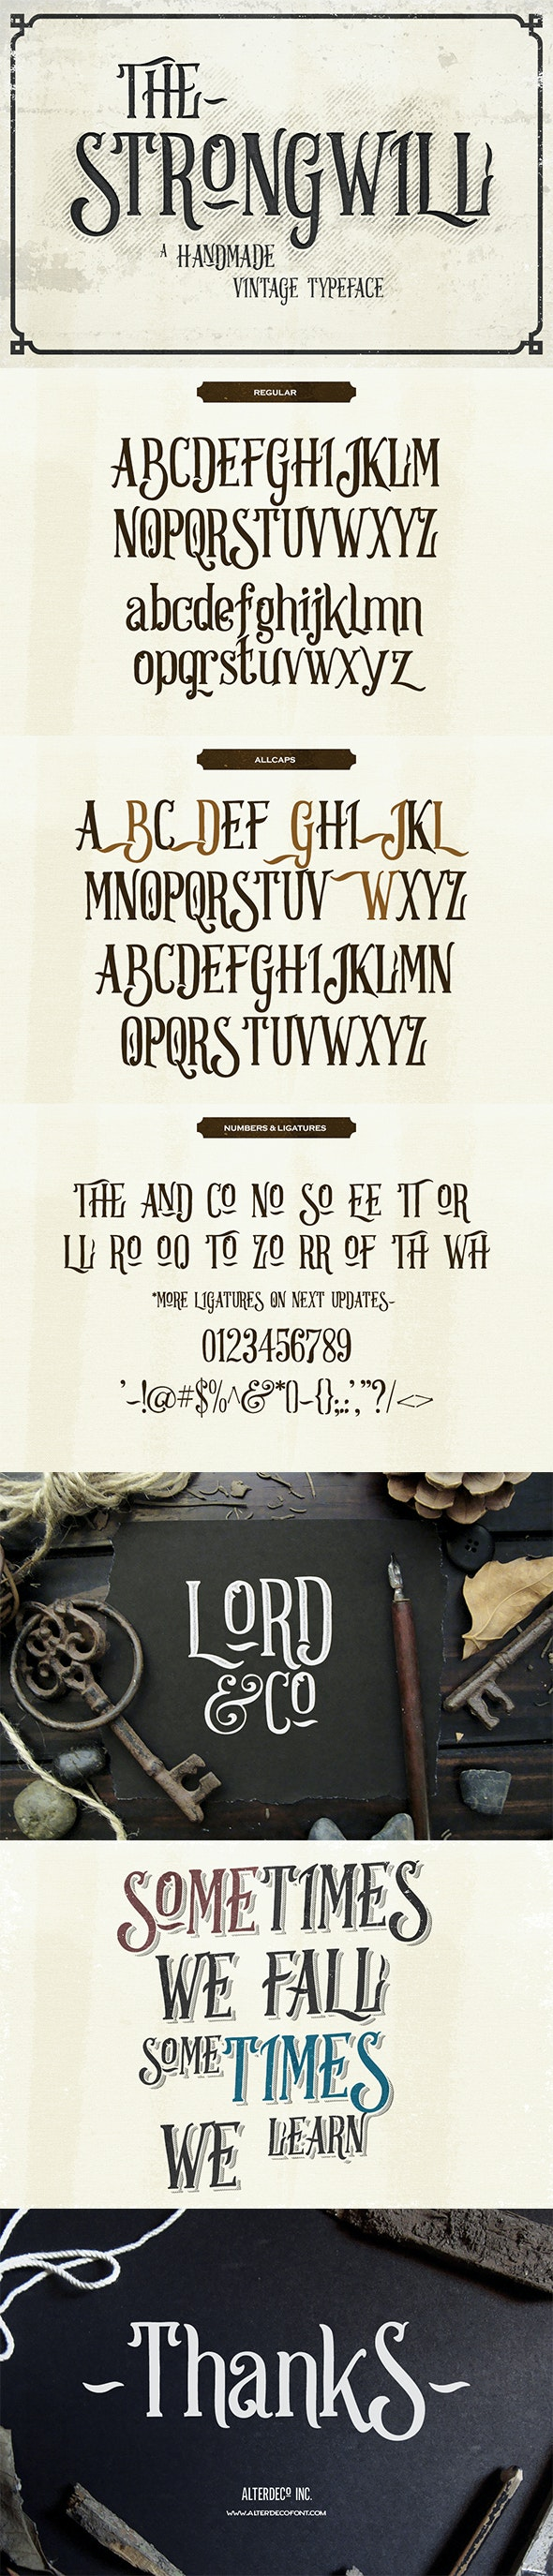 Strongwill Typeface